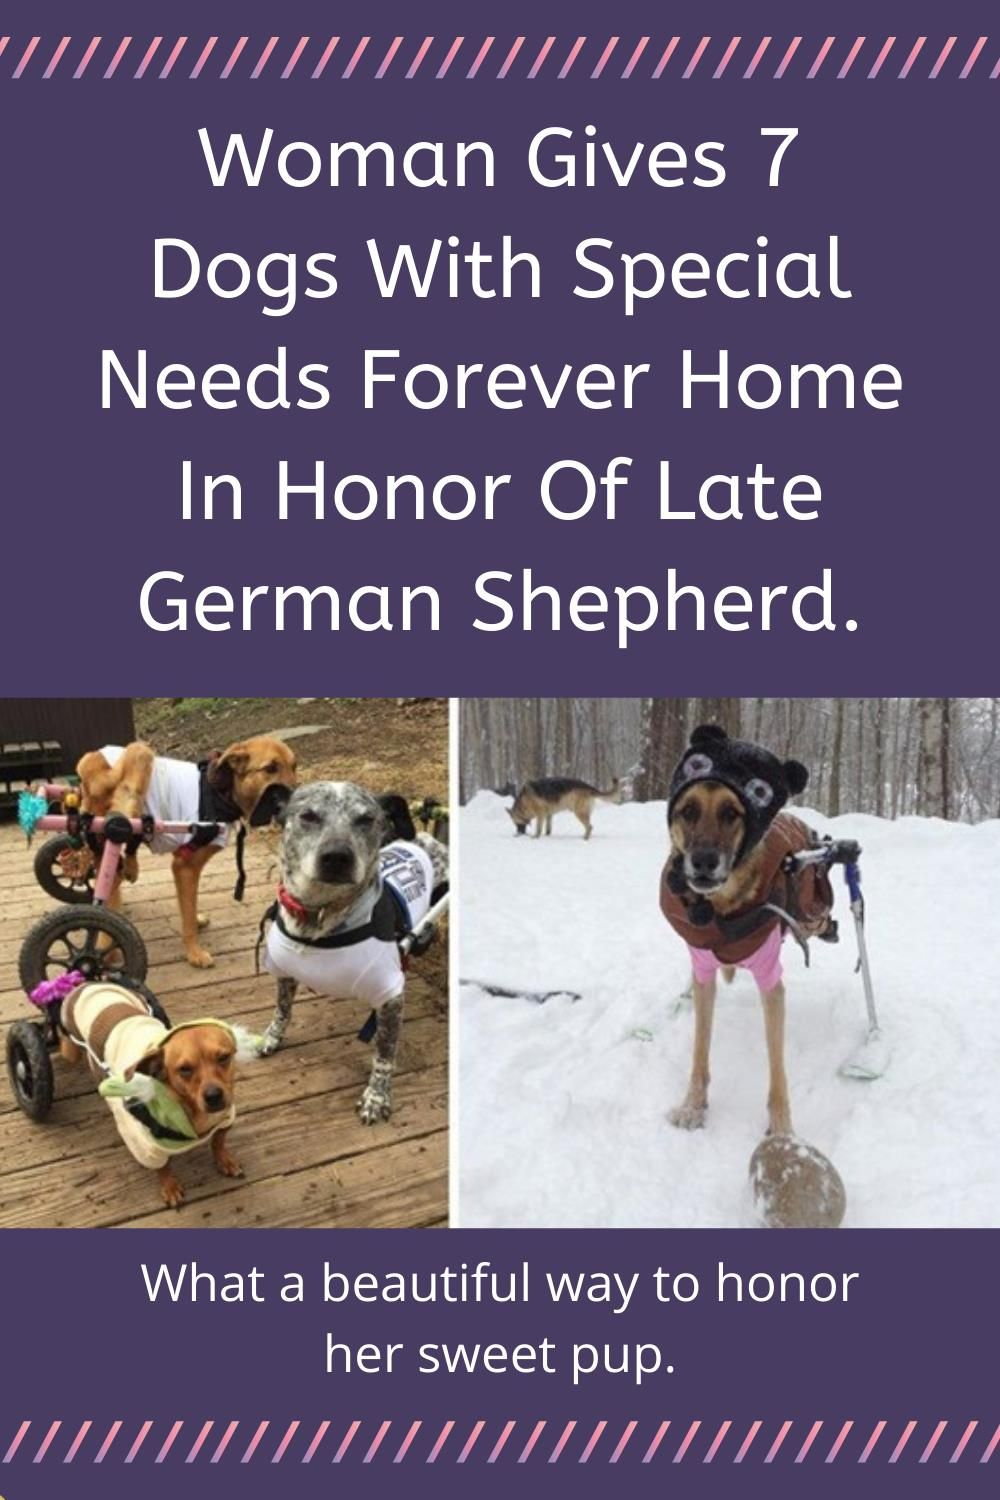 Woman Gives 7 Dogs With Special Needs Forever Home In Honor Of Late German Shepherd In 2020 German Shepherd Dogs Animals